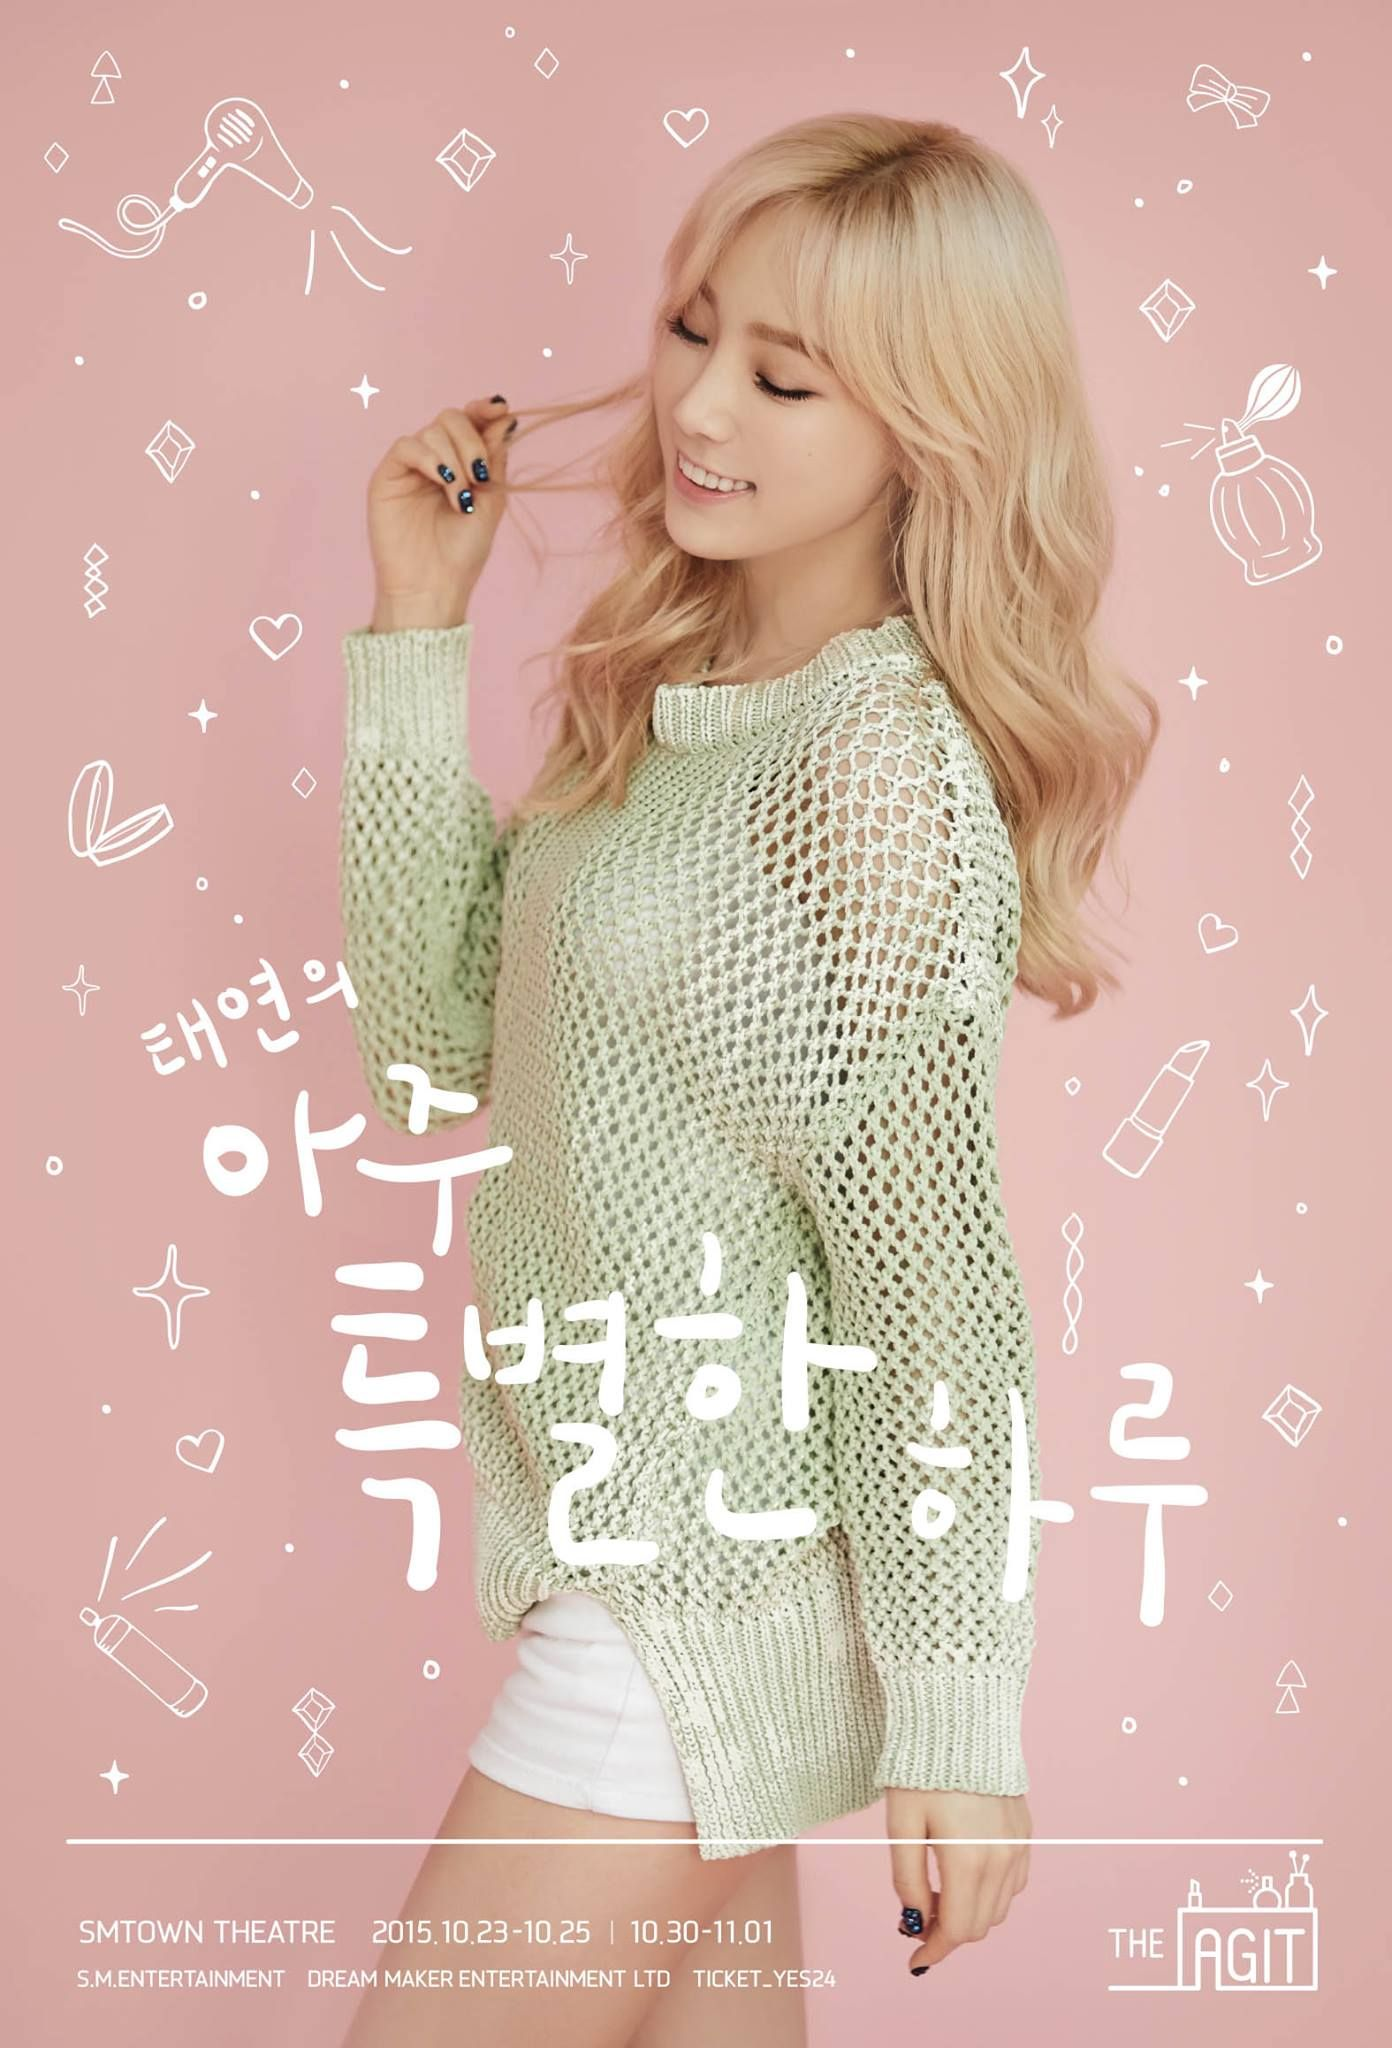 Girls Generation Member Taeyeon Announced As Next Singer For SMs The AGIT Live